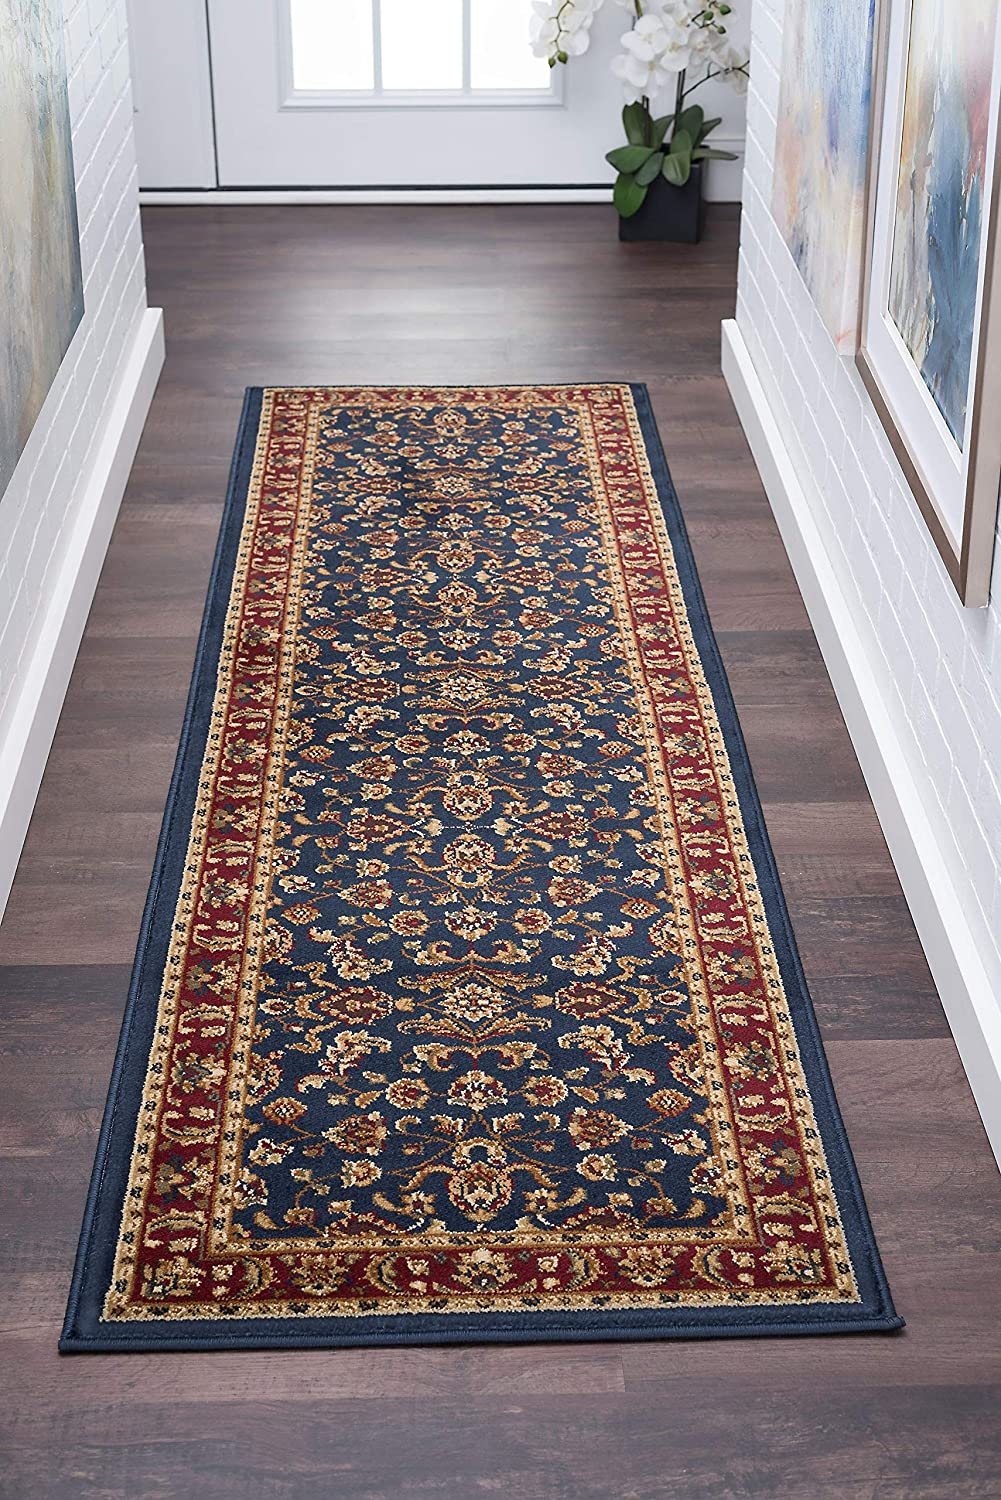 Universal Rugs Sariya Oriental Transitional Runner Accent Area Rug Navy Blue 68 X 221 Cm 2 X 8 Ft Amazon Co Uk Kitchen Home